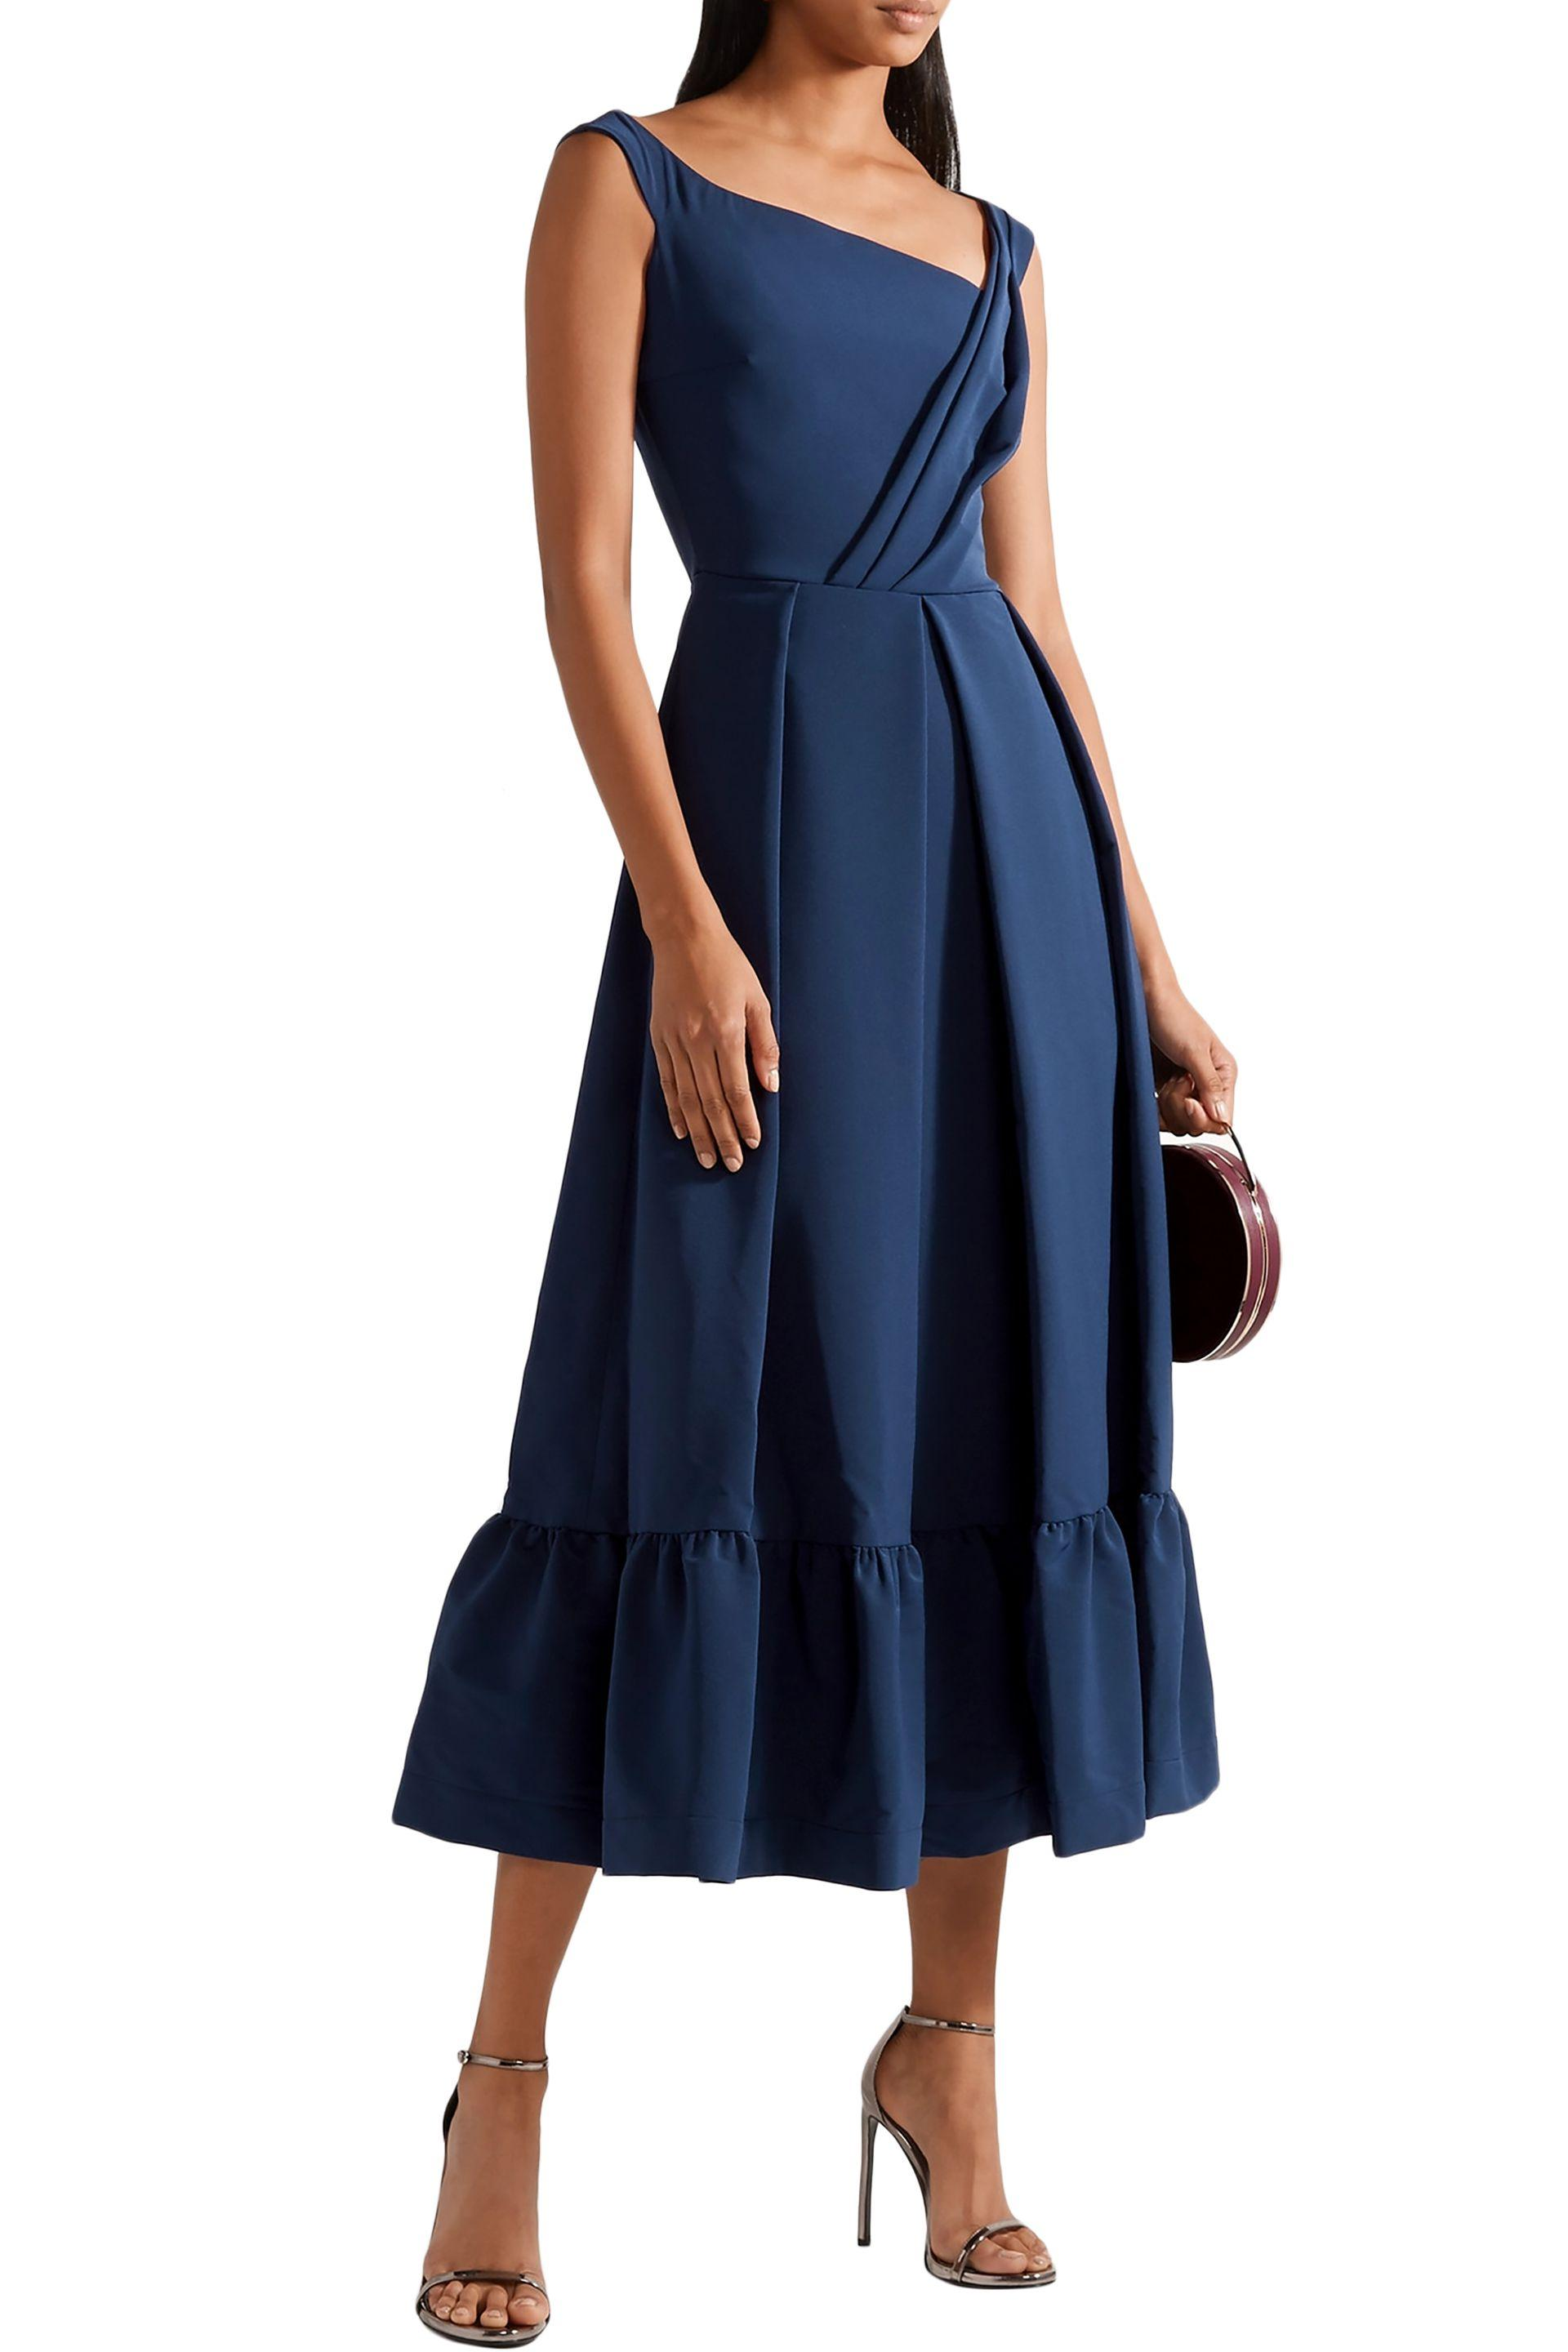 Preen Navy Maxi Dress